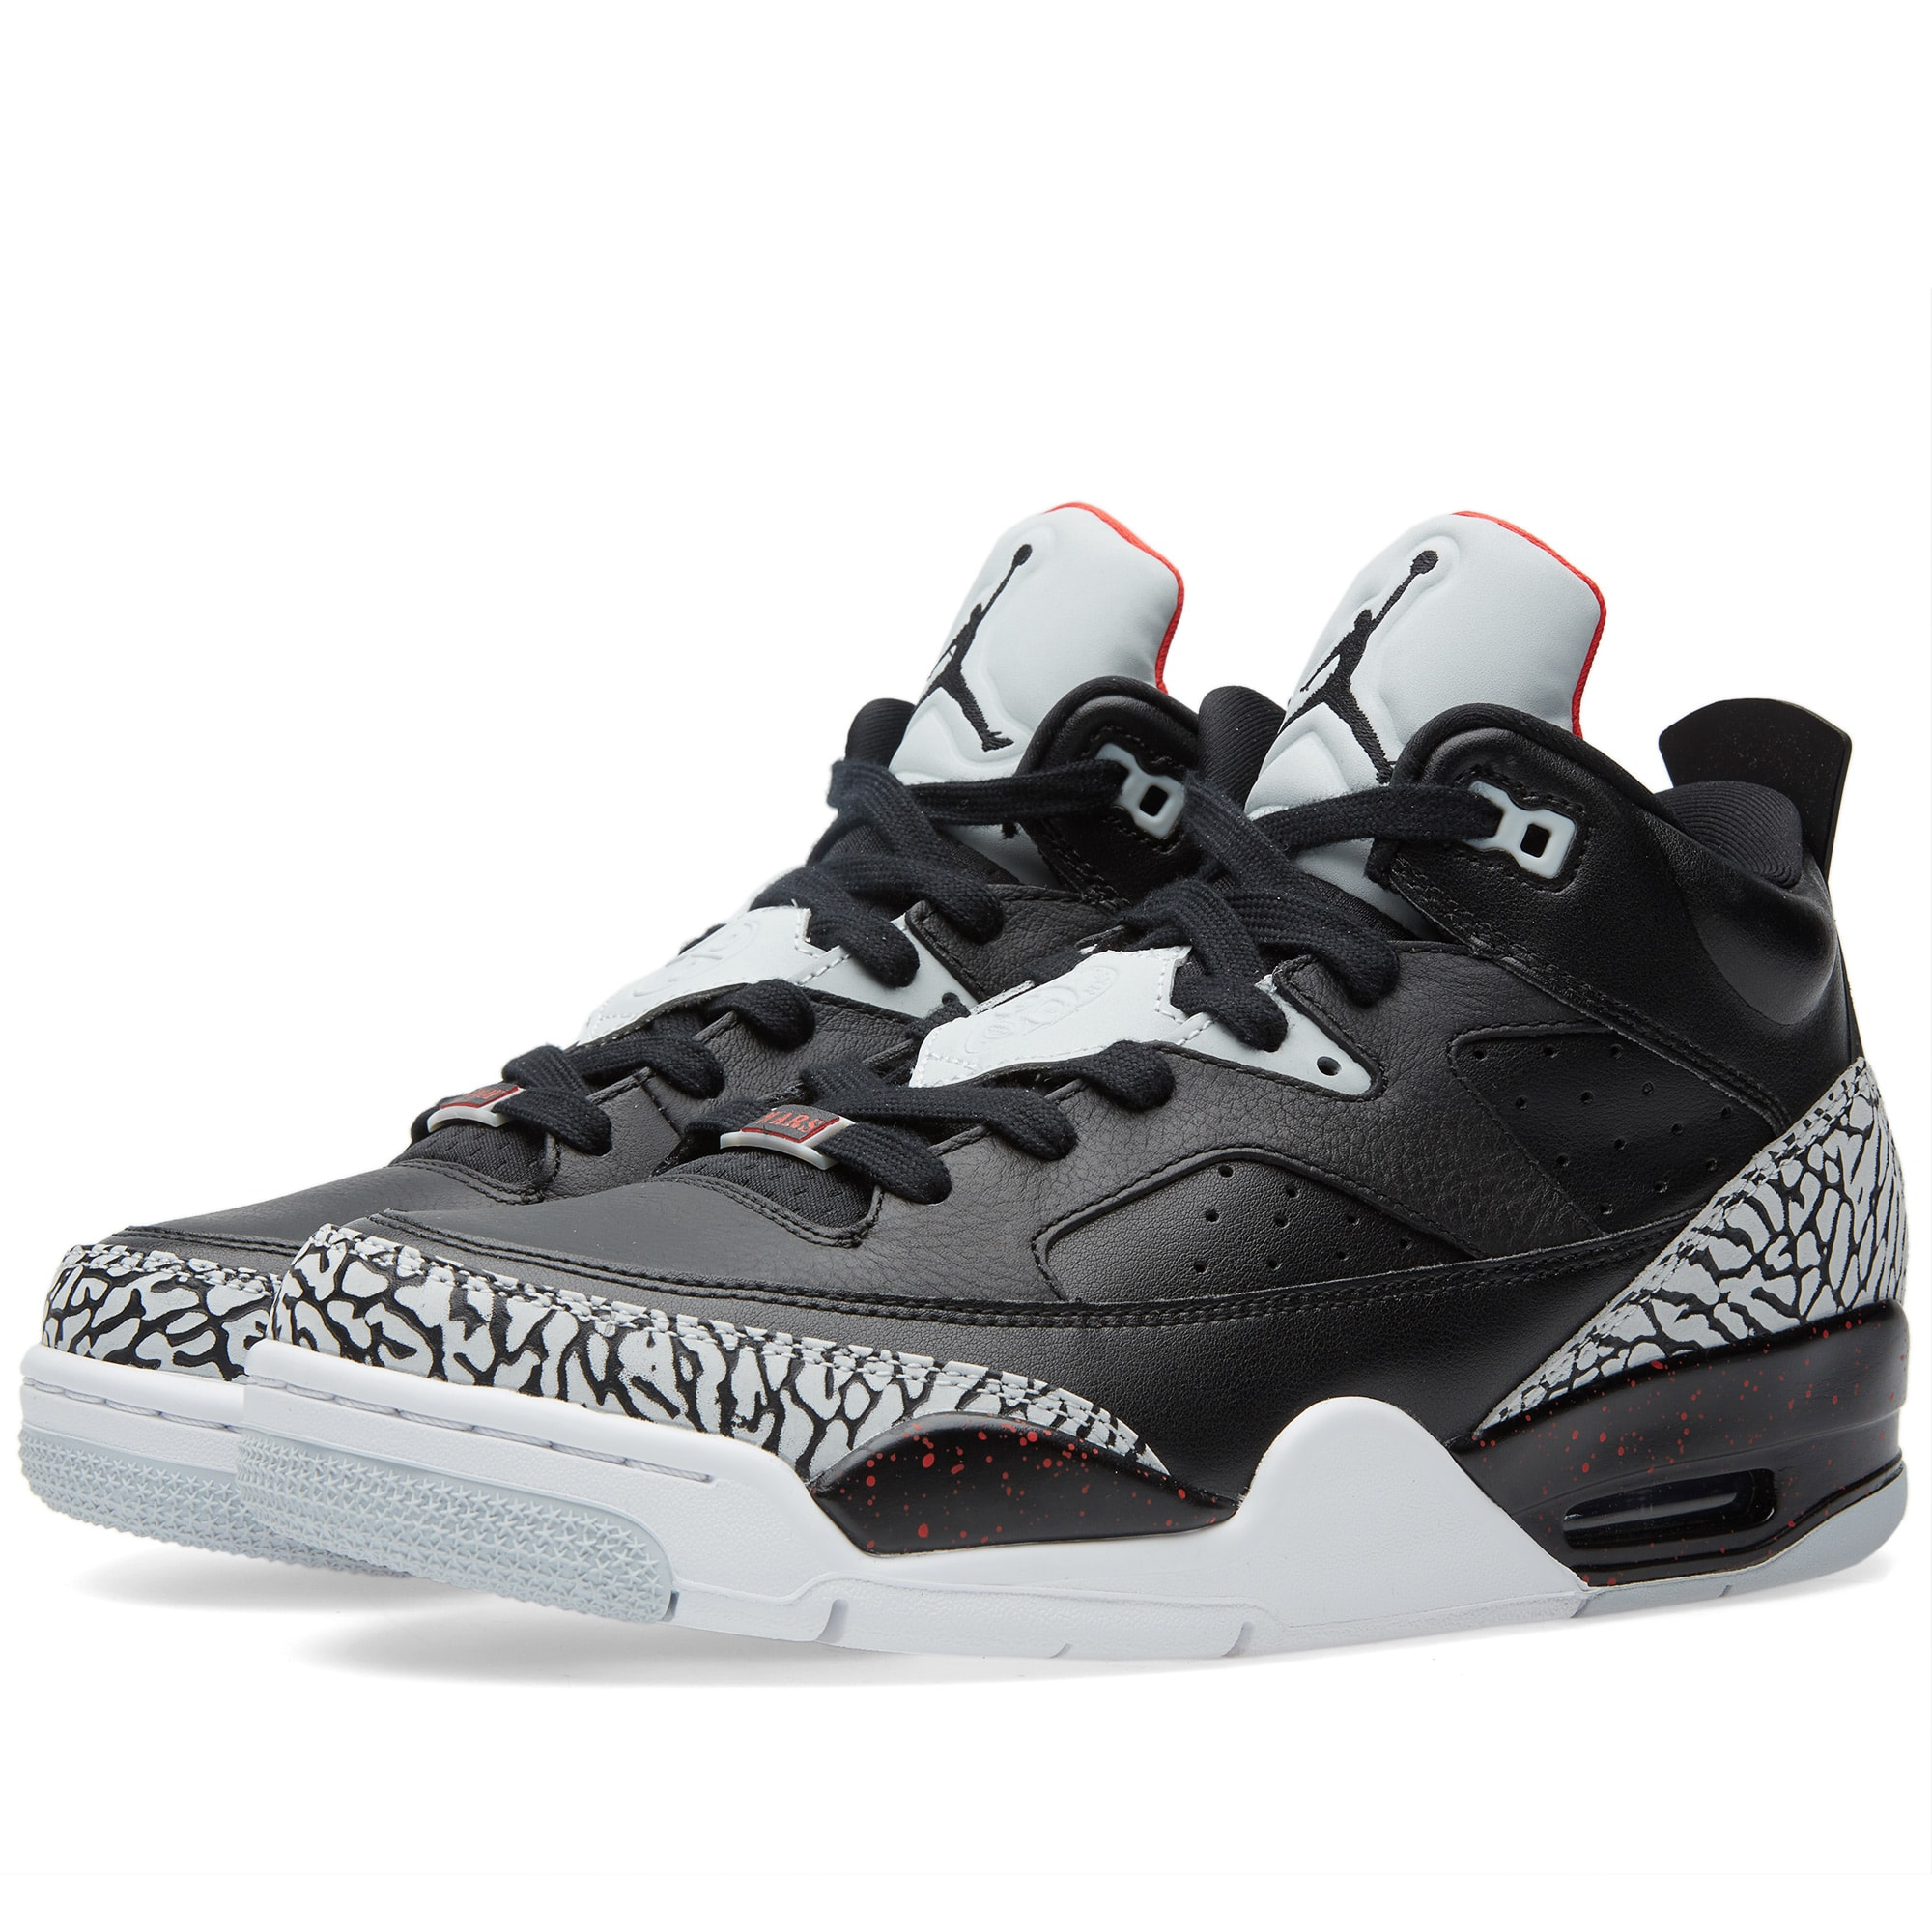 low priced 040a6 a8ed7 Nike Air Jordan Son of Mars Low  Black Cement  Black   University Red   END.